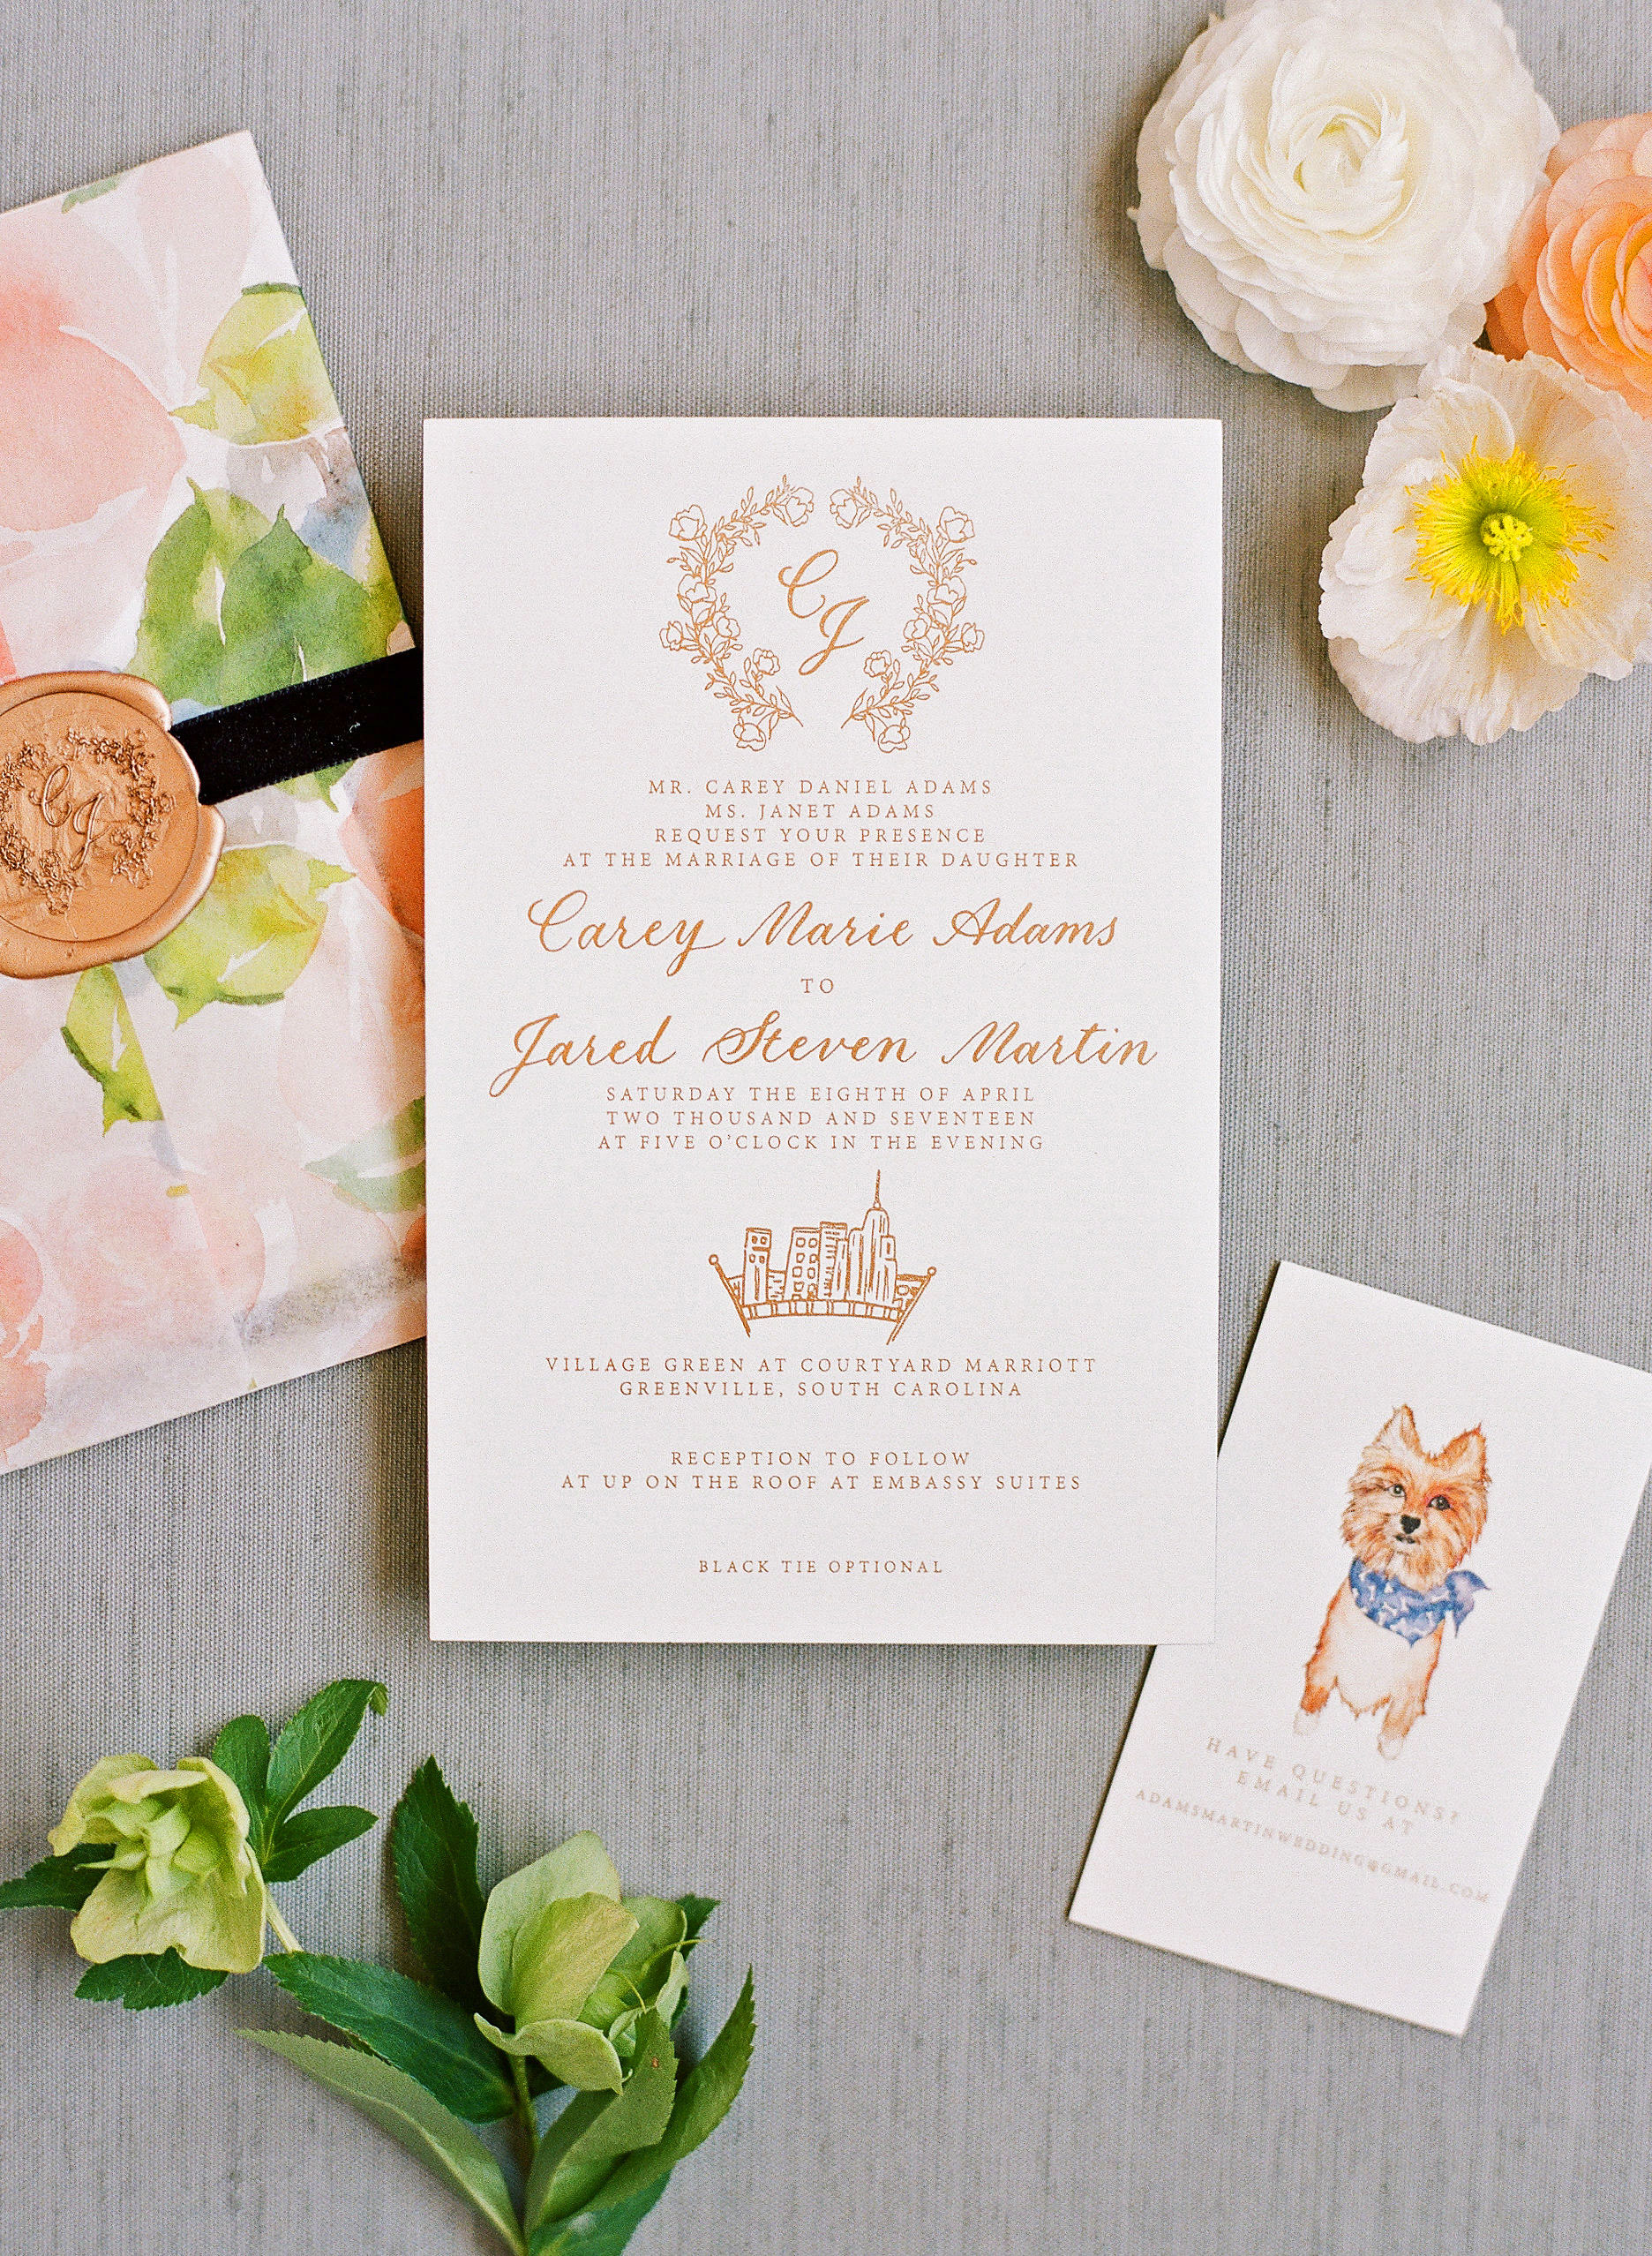 carey jared wedding invite formal